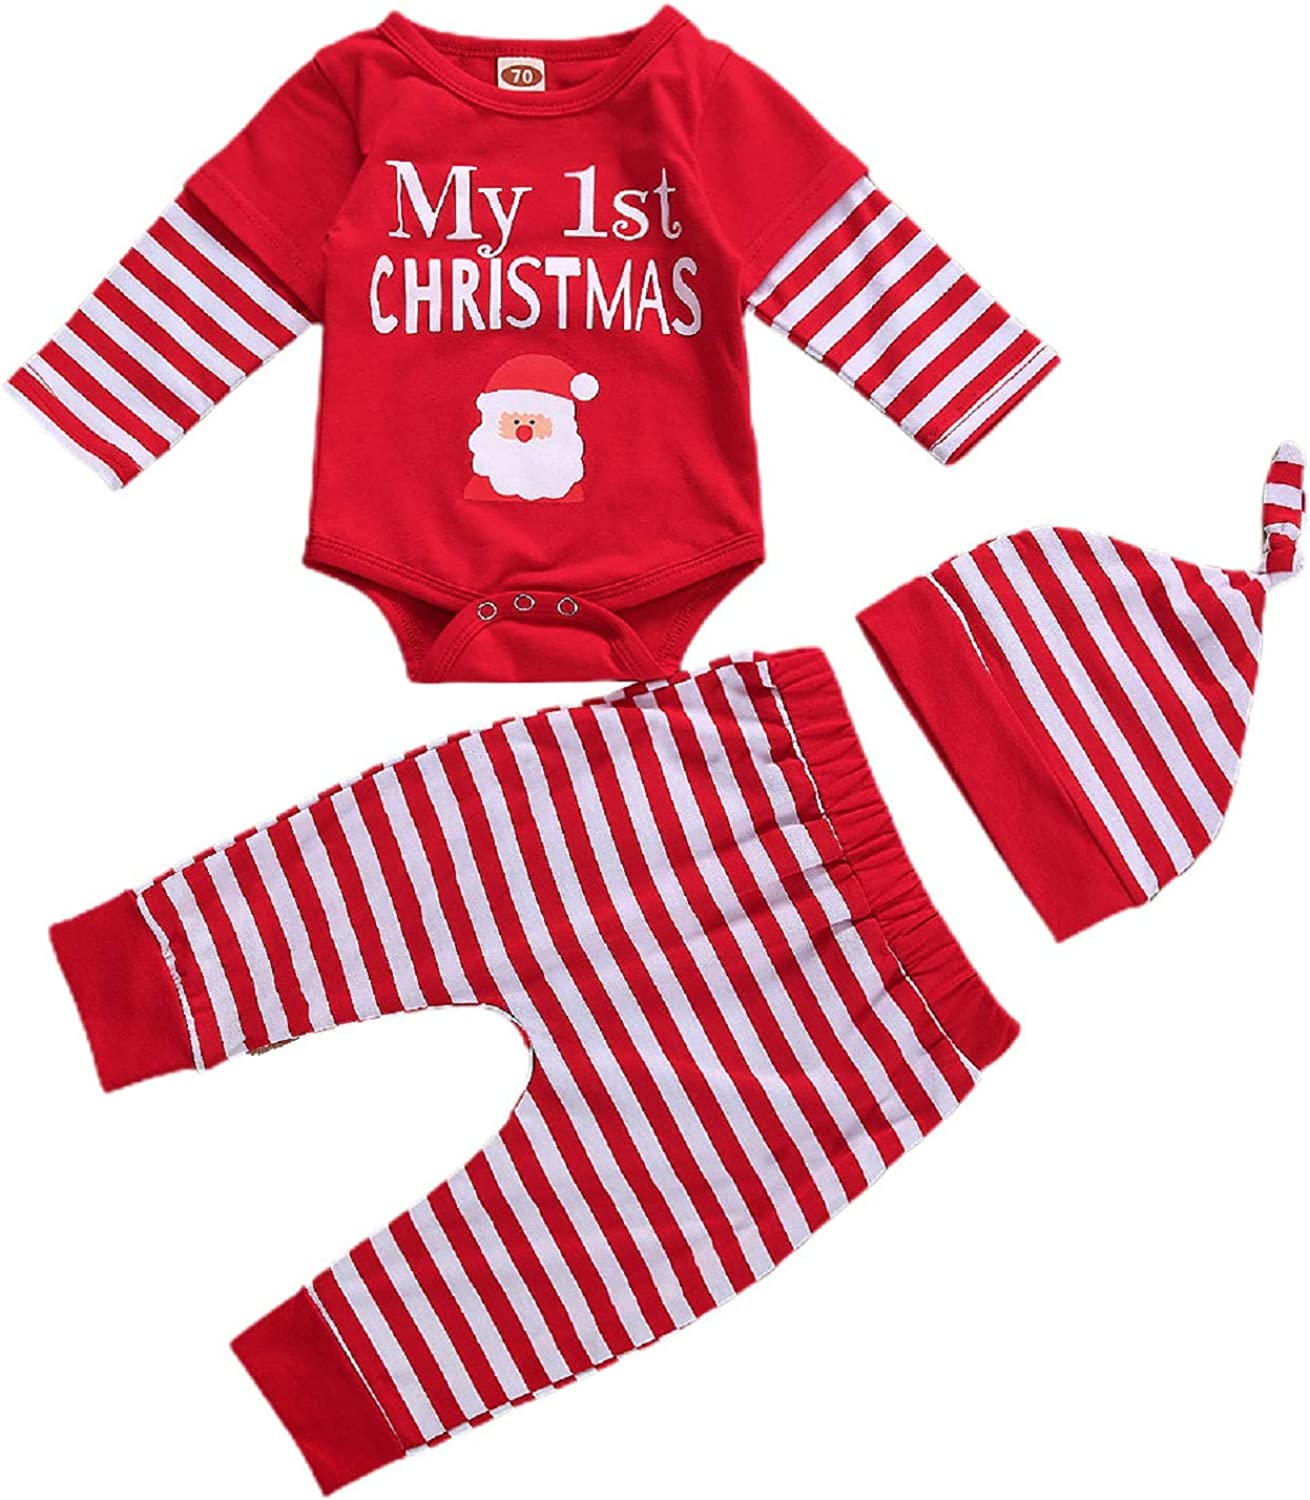 My 1st Christmas Outfit Newborn Baby Boy Girl Long Sleeve Romper + Plaid/Stripe Pants Hat 3PCS Fall Winter Outfits Set